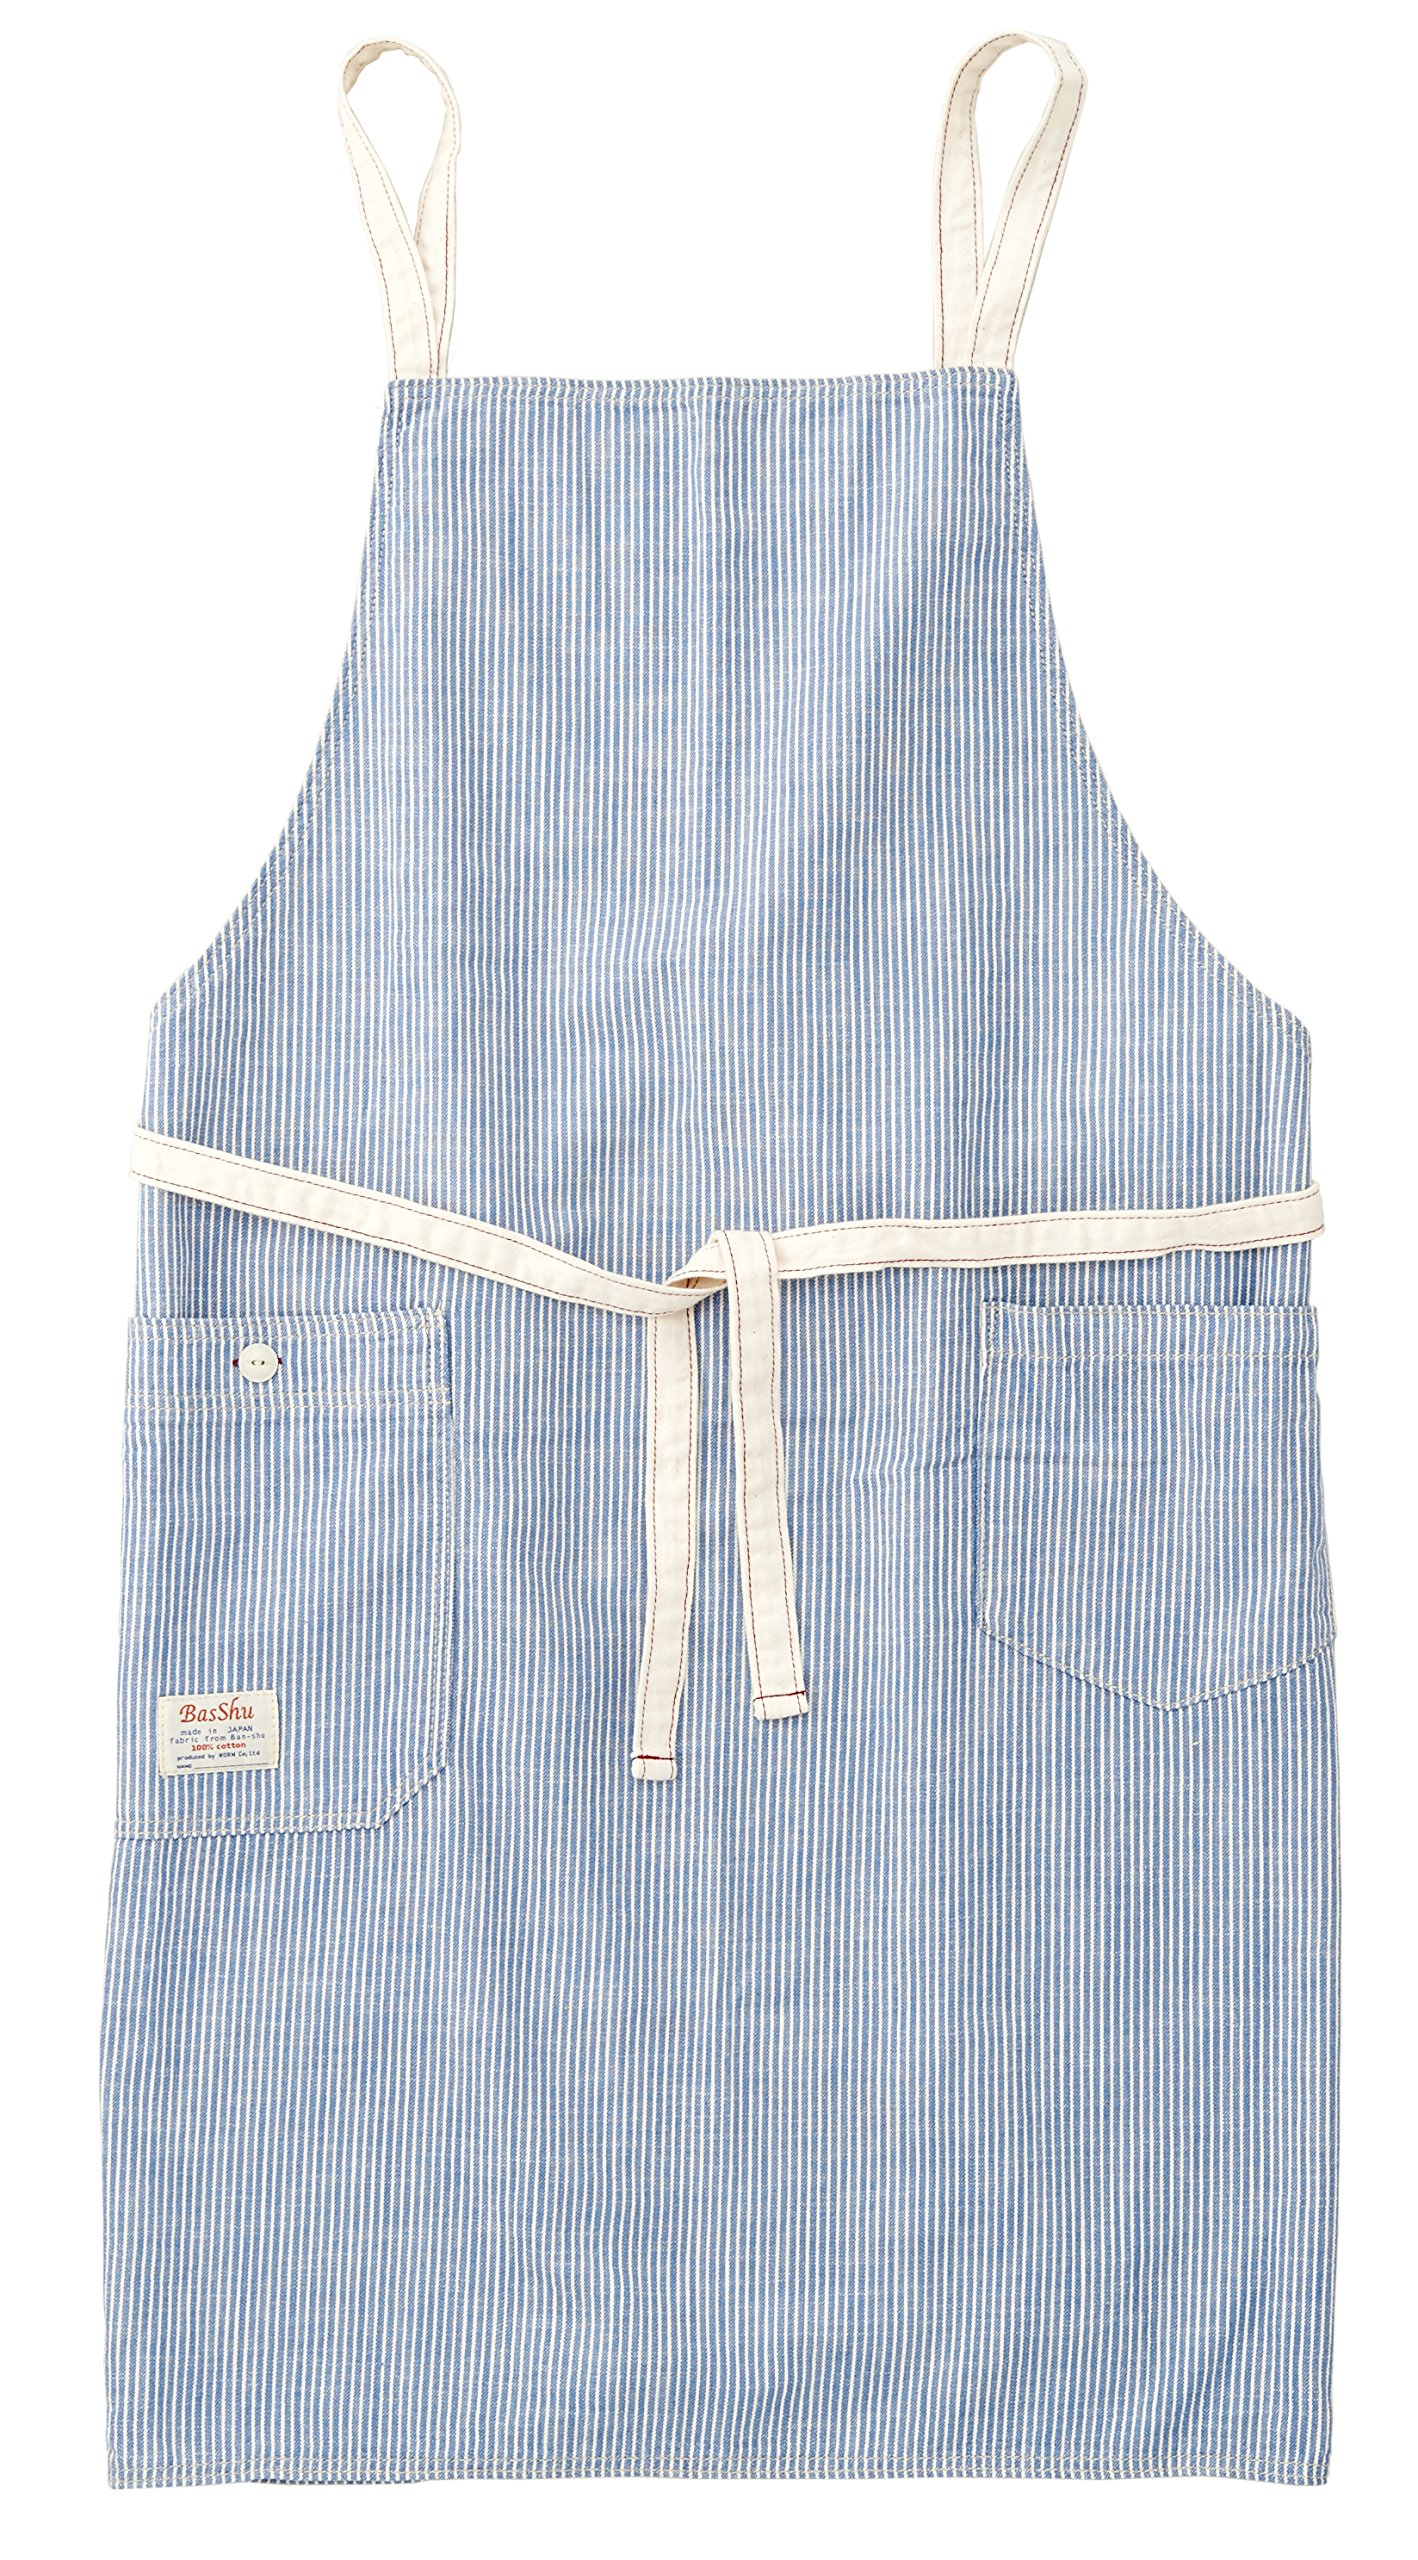 Chambray Bib Apron (Pinstripe Blue ) by BasShu